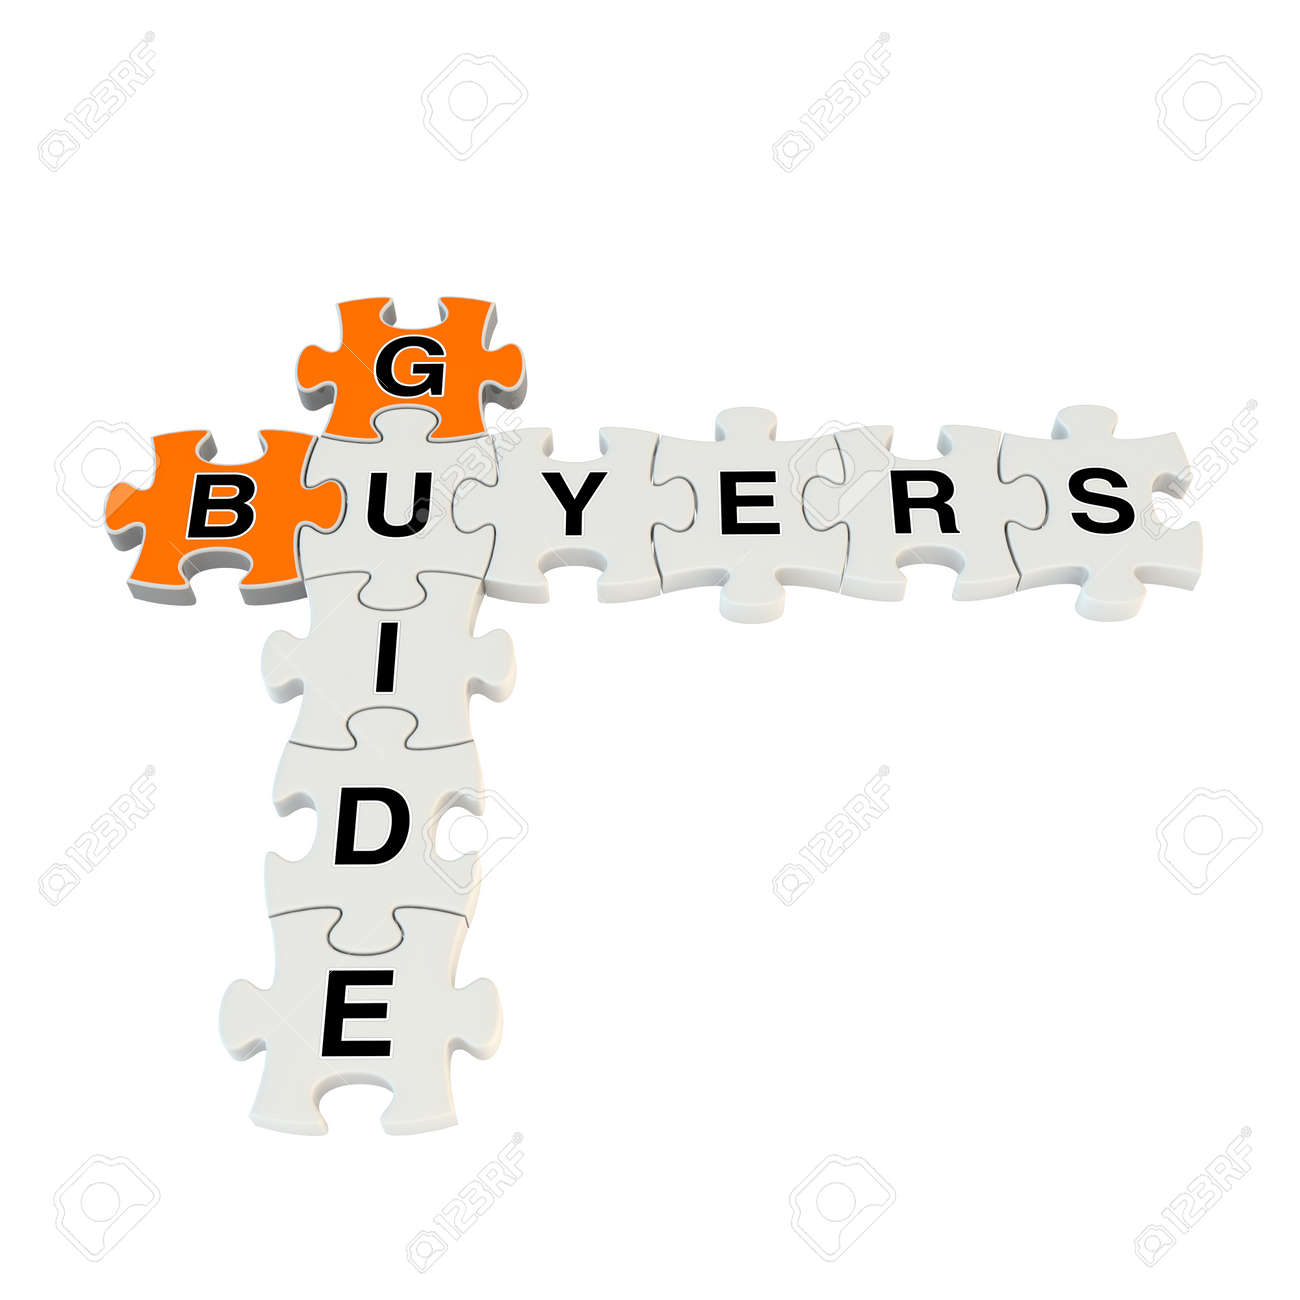 Buyers guide 3d puzzle on white background Stock Photo - 25878708